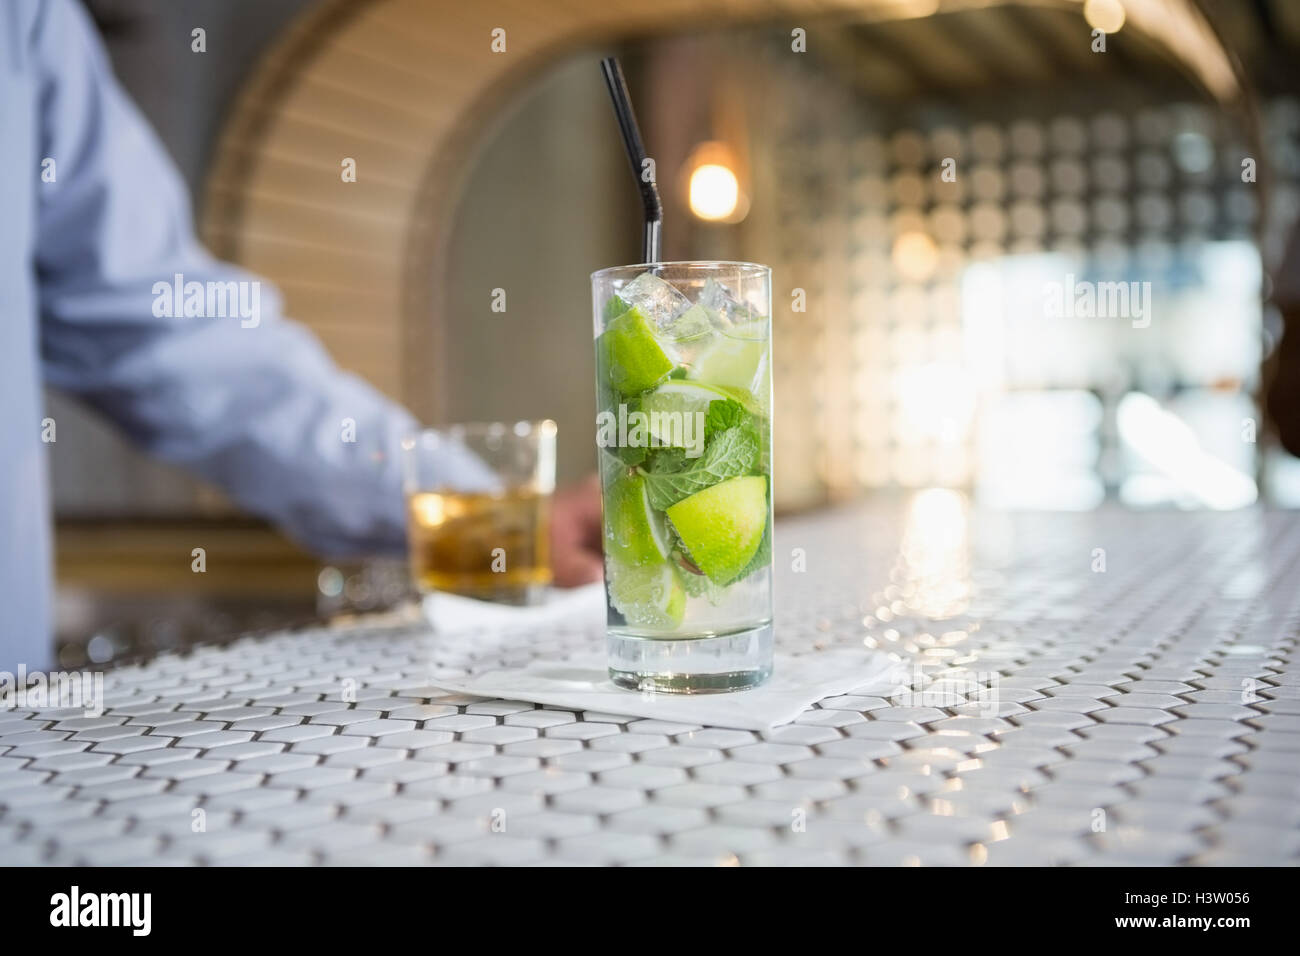 Glass of gin on bar counter - Stock Image